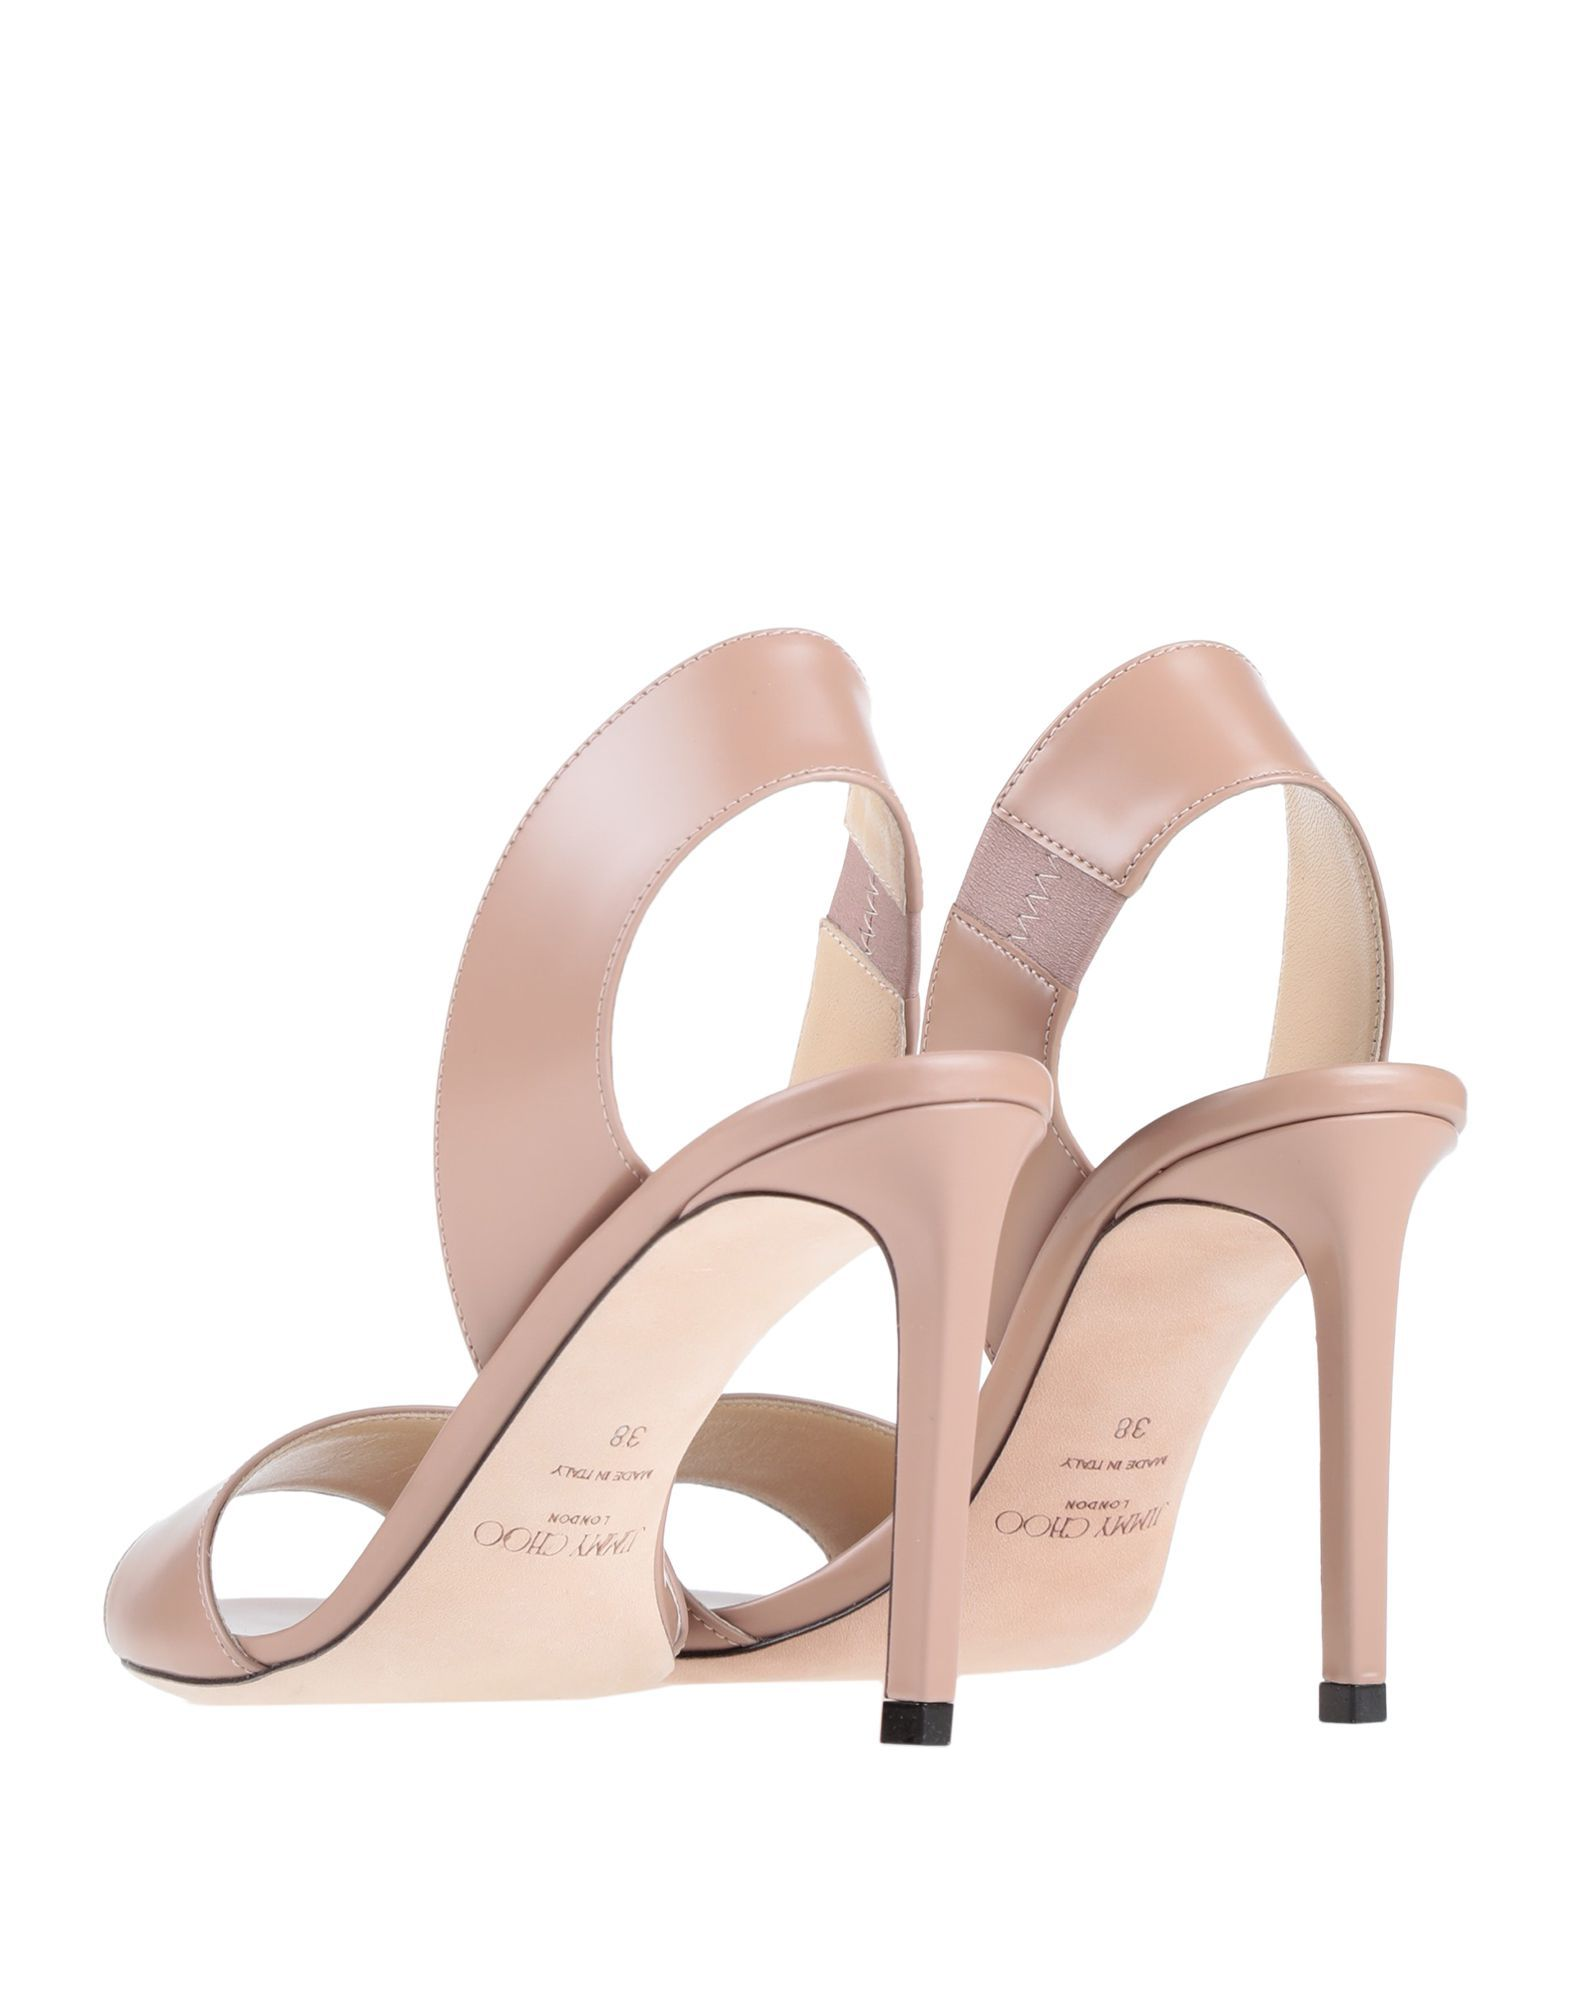 Jimmy Choo Pale Pink Leather Heeled Sandals